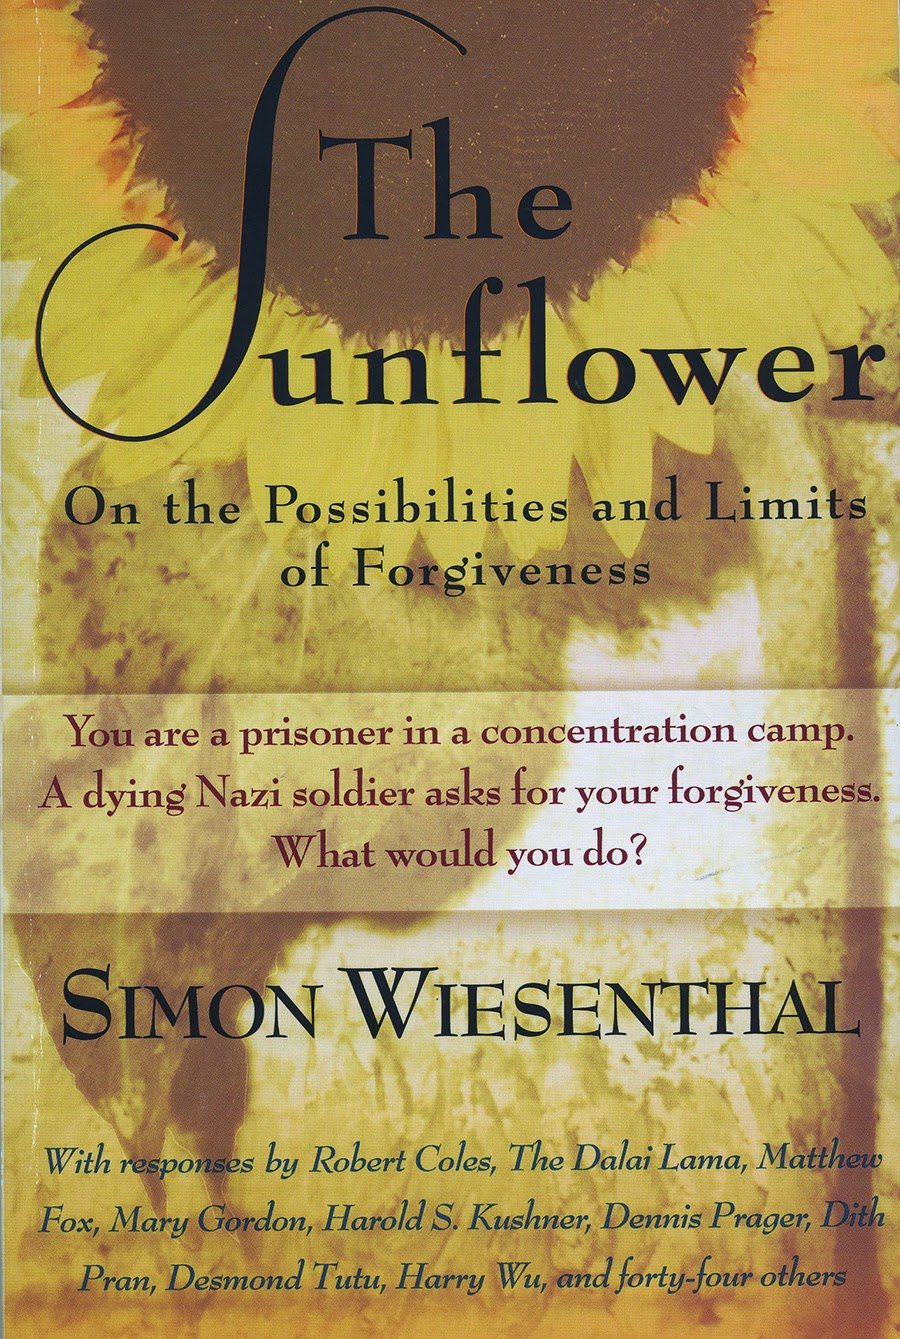 simon wiesenthal essay I imagine an existence consumed by violence and despair the sunflower delves us into this existence through the eyes of the author, simon wiesenthal.